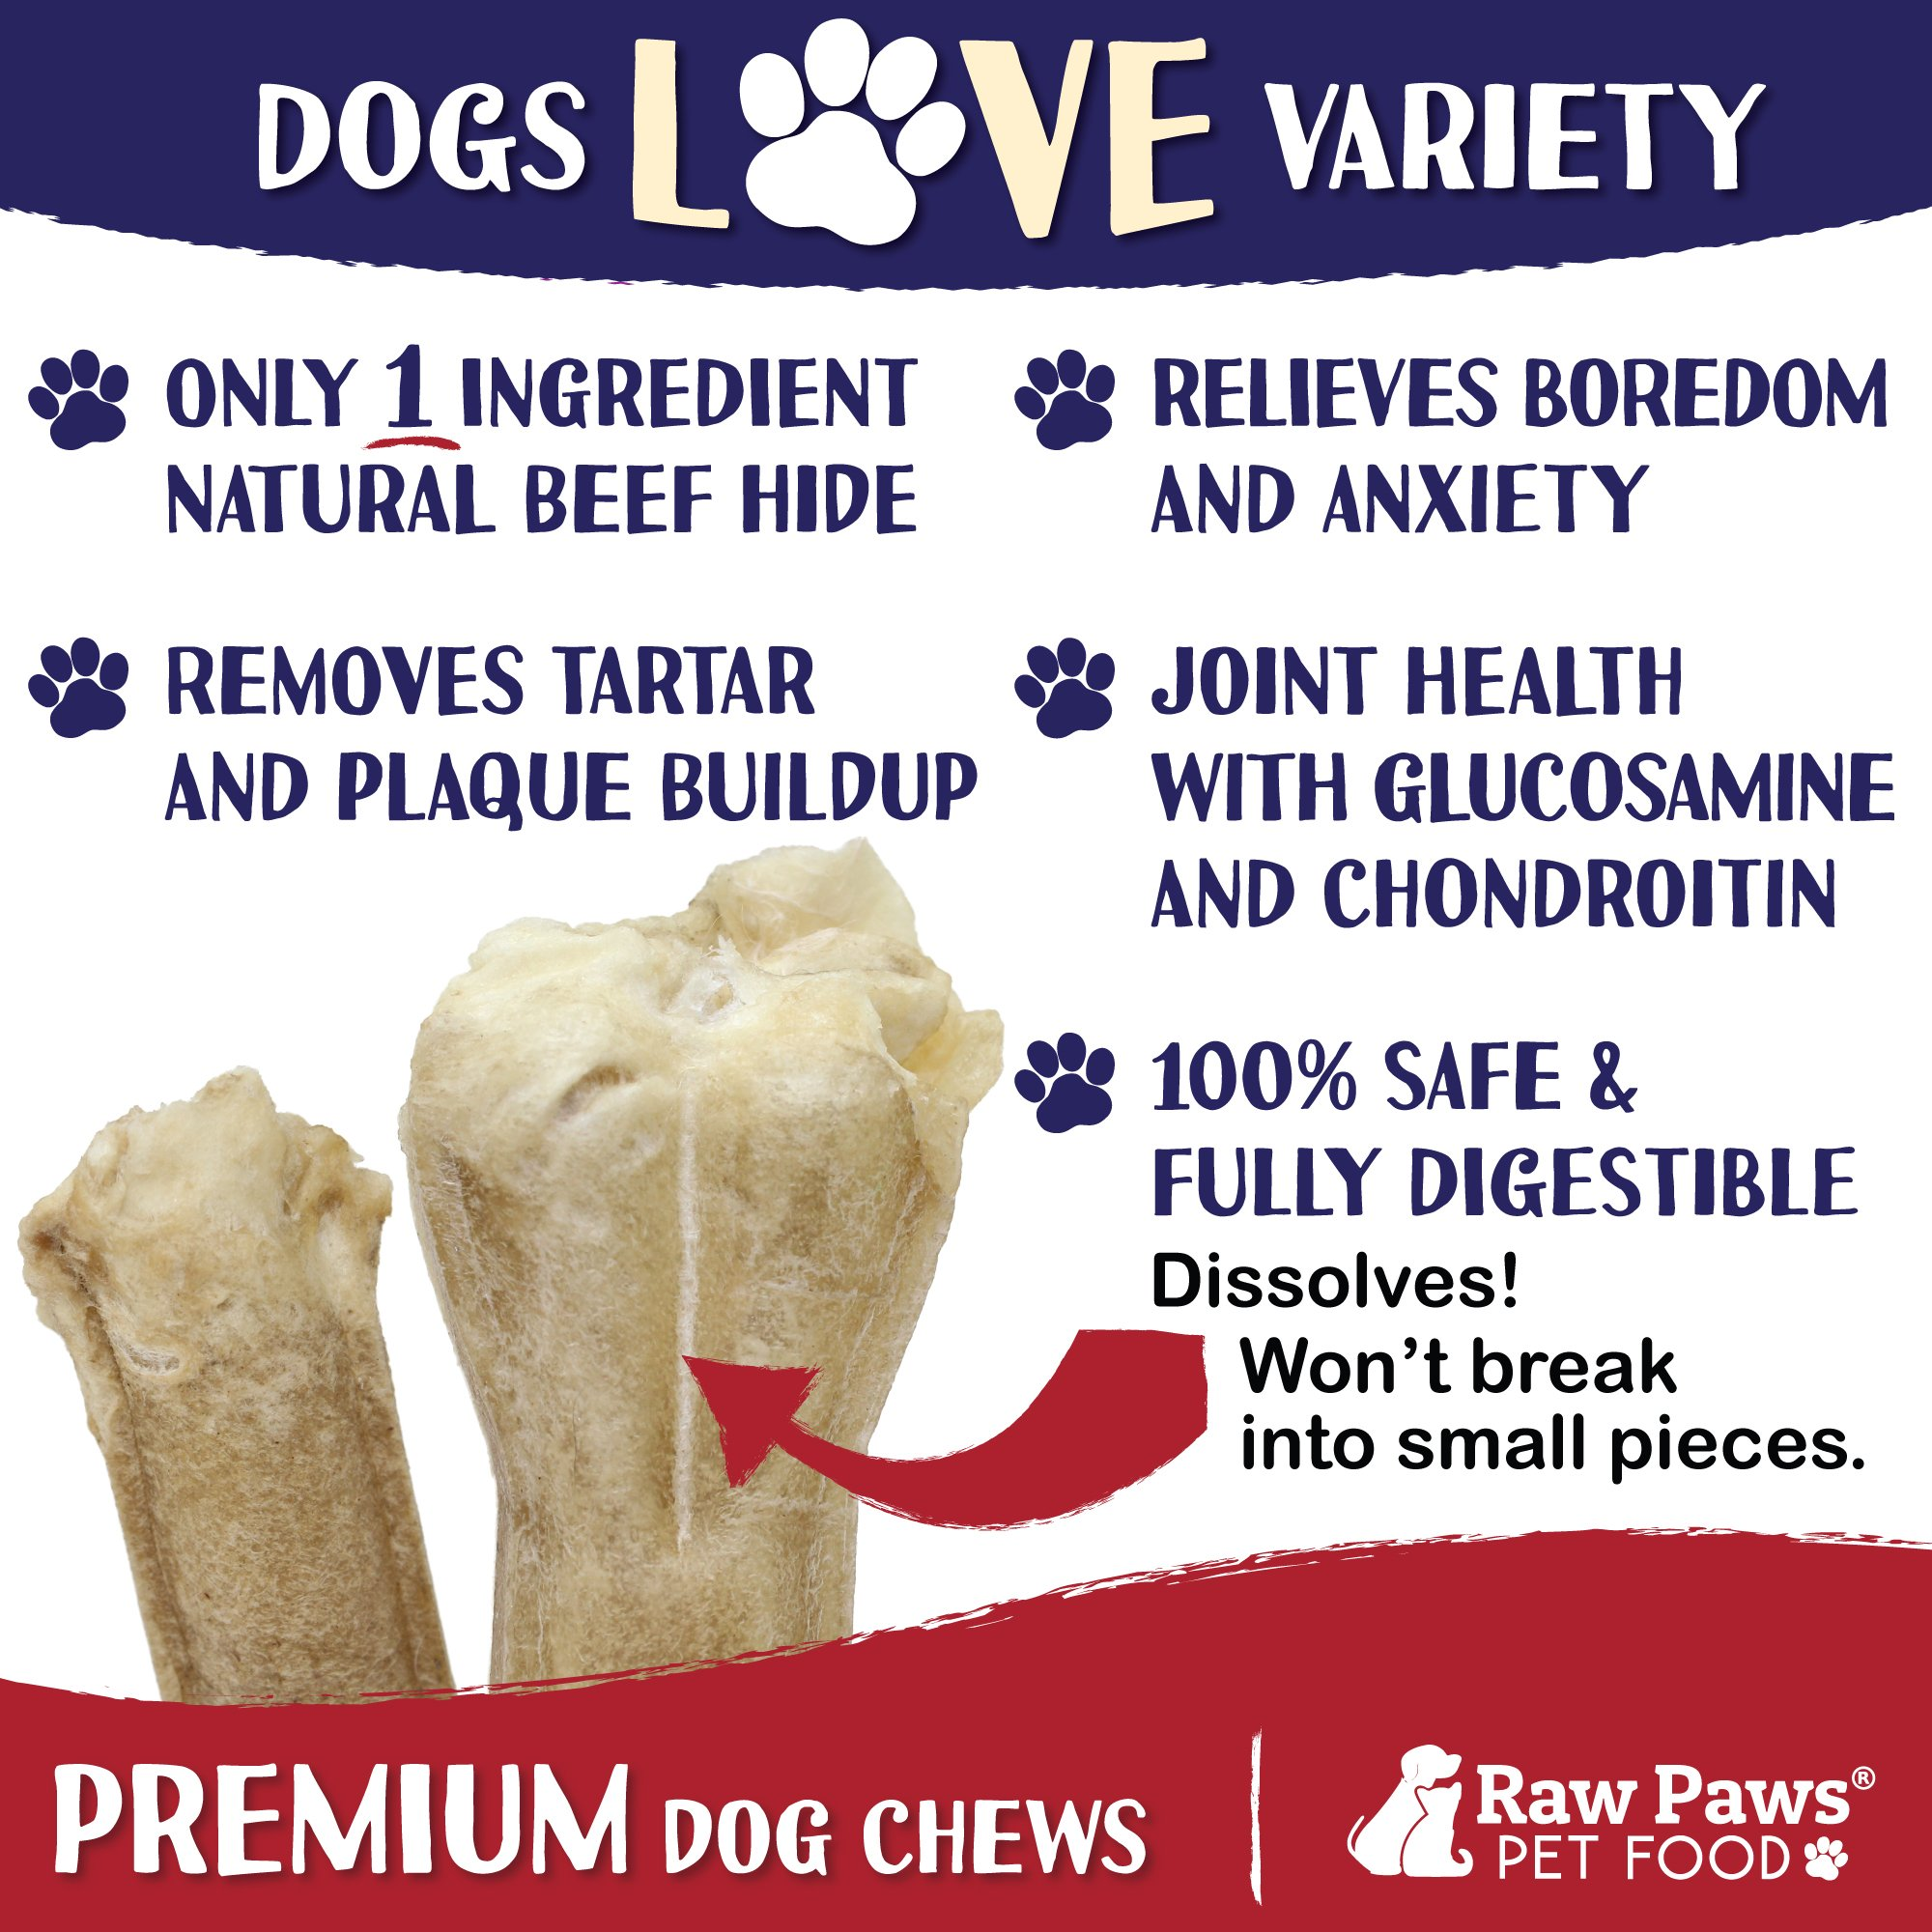 Raw Paws Dog Treats Variety Pack 10'' Compressed Rawhide Sticks & 10'' Pressed Rawhide Bones, 10-count - Large Dog Bones for Aggressive Chewers - Rawhide Chews Dog Treat Value Pack - Variety Dog Chews by Raw Paws (Image #2)